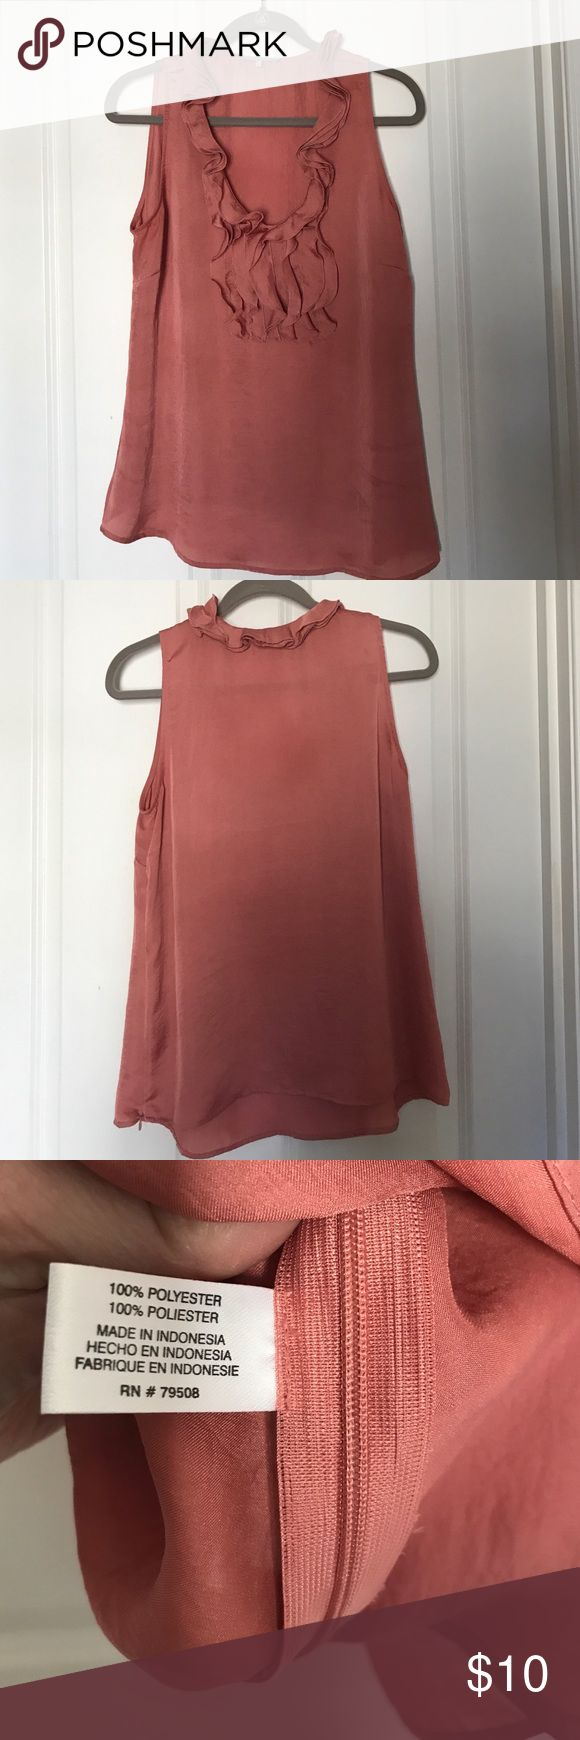 """Pretty clay pink sleeveless ruffled top size L This is a cute top by Violet&Claire in a polyester material that looks like washed silk. Color is a lovely clay pink. Looks great with white jeans and flat sandals! Side zipper. Very feminine. Size large fits a 37"""" bust comfotably. Violet & Claire Tops"""